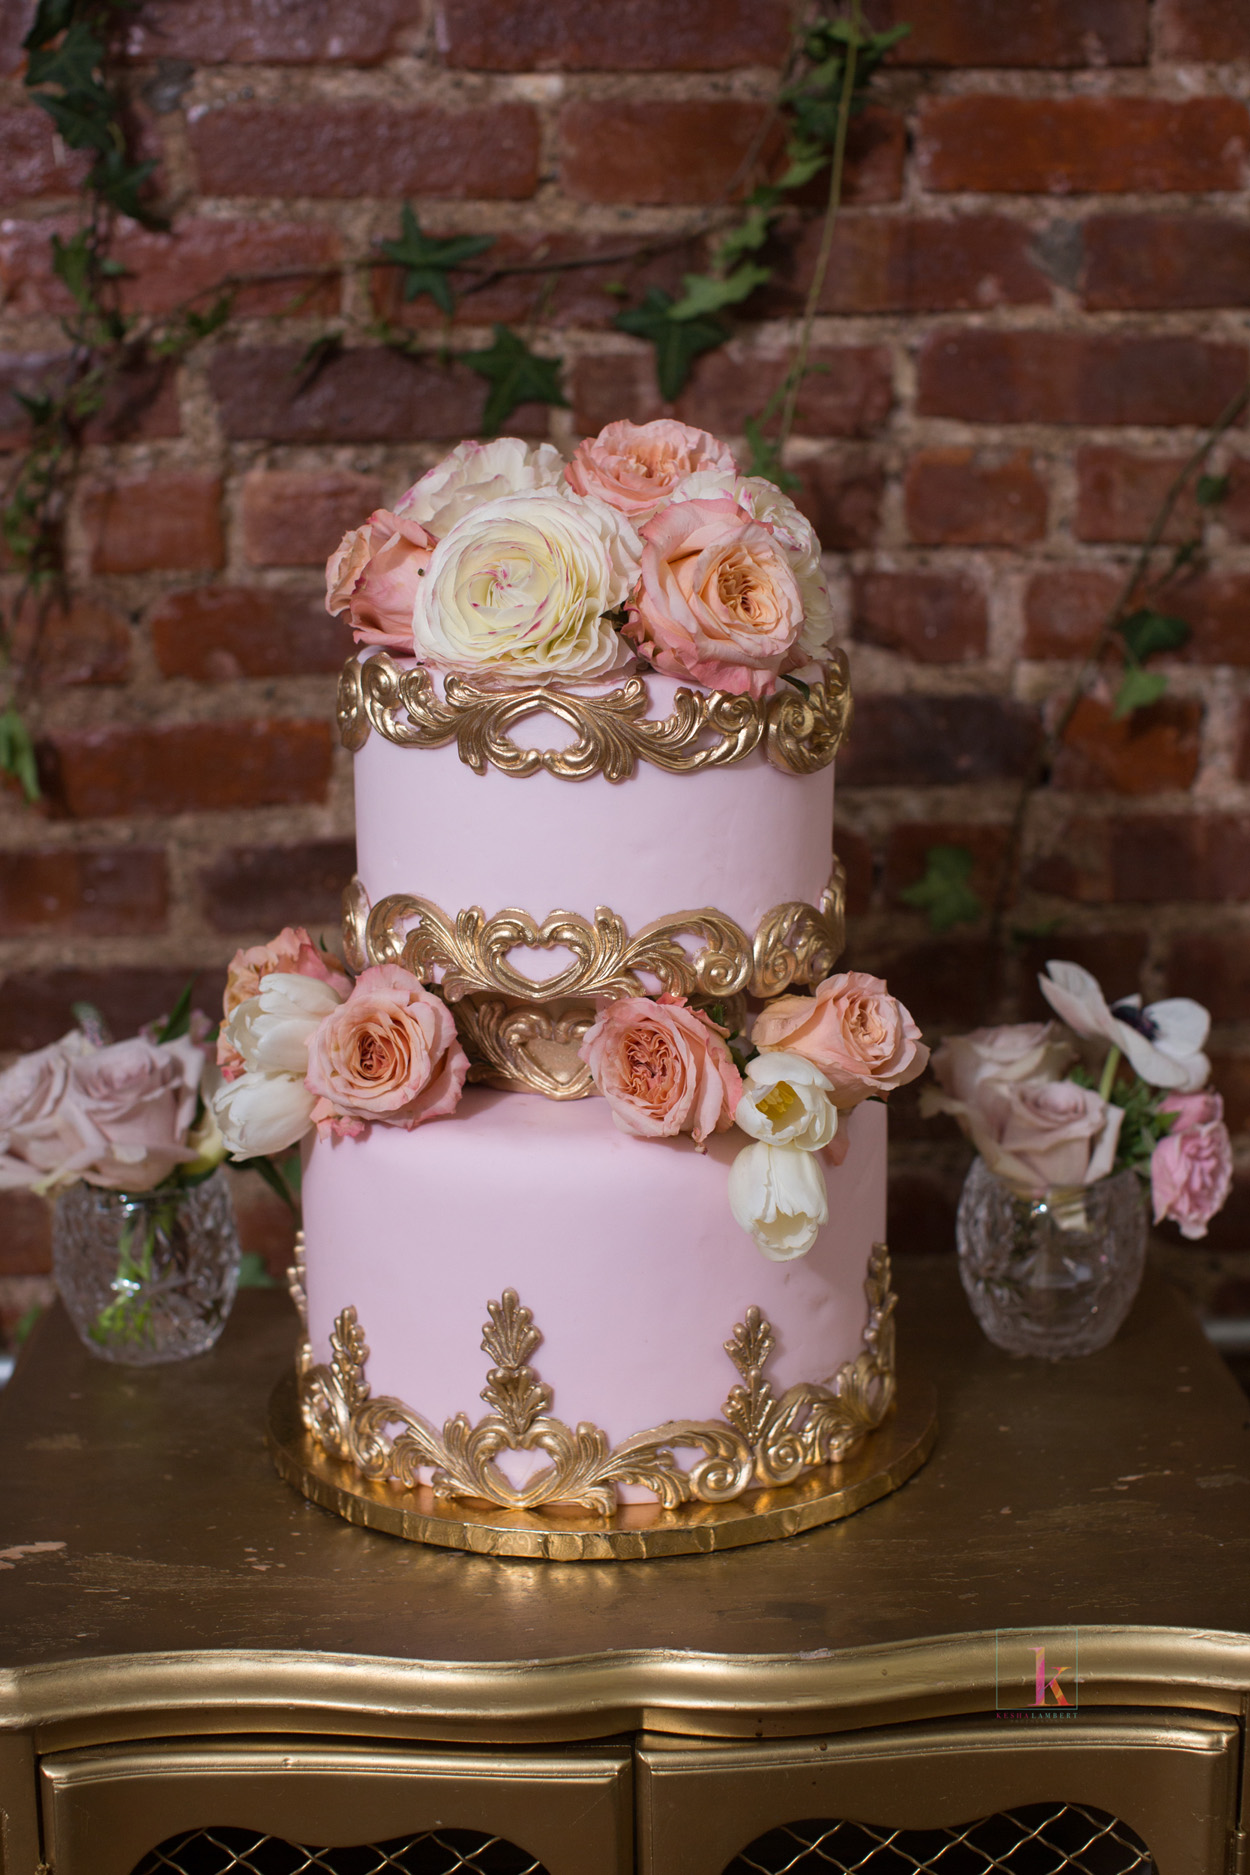 Small Wedding Cakes.Wedding Cake Ideas Small One Two And Three Tier Cakes Inside